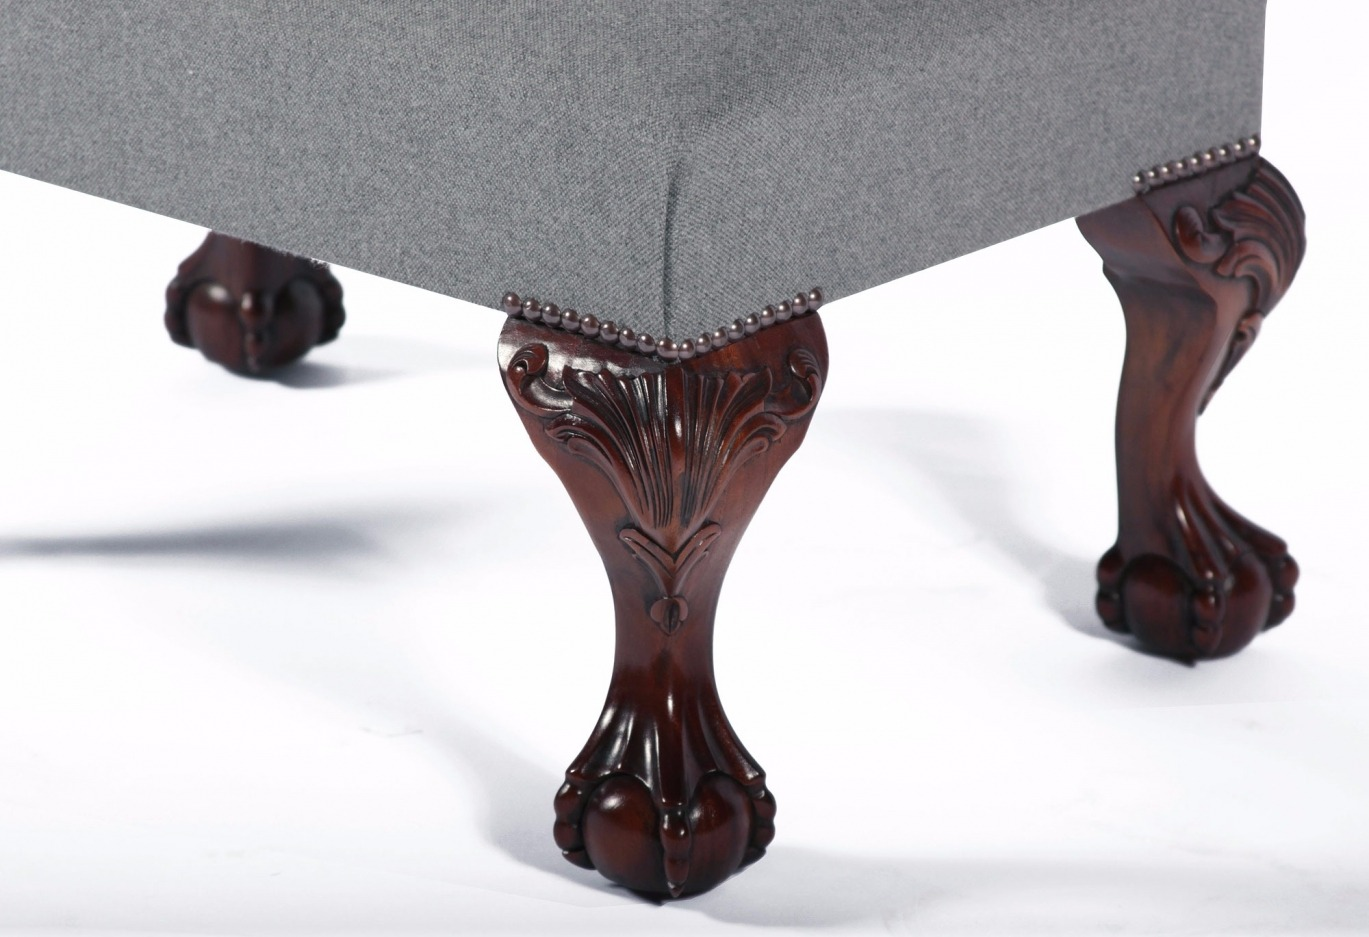 Footstool with leg options